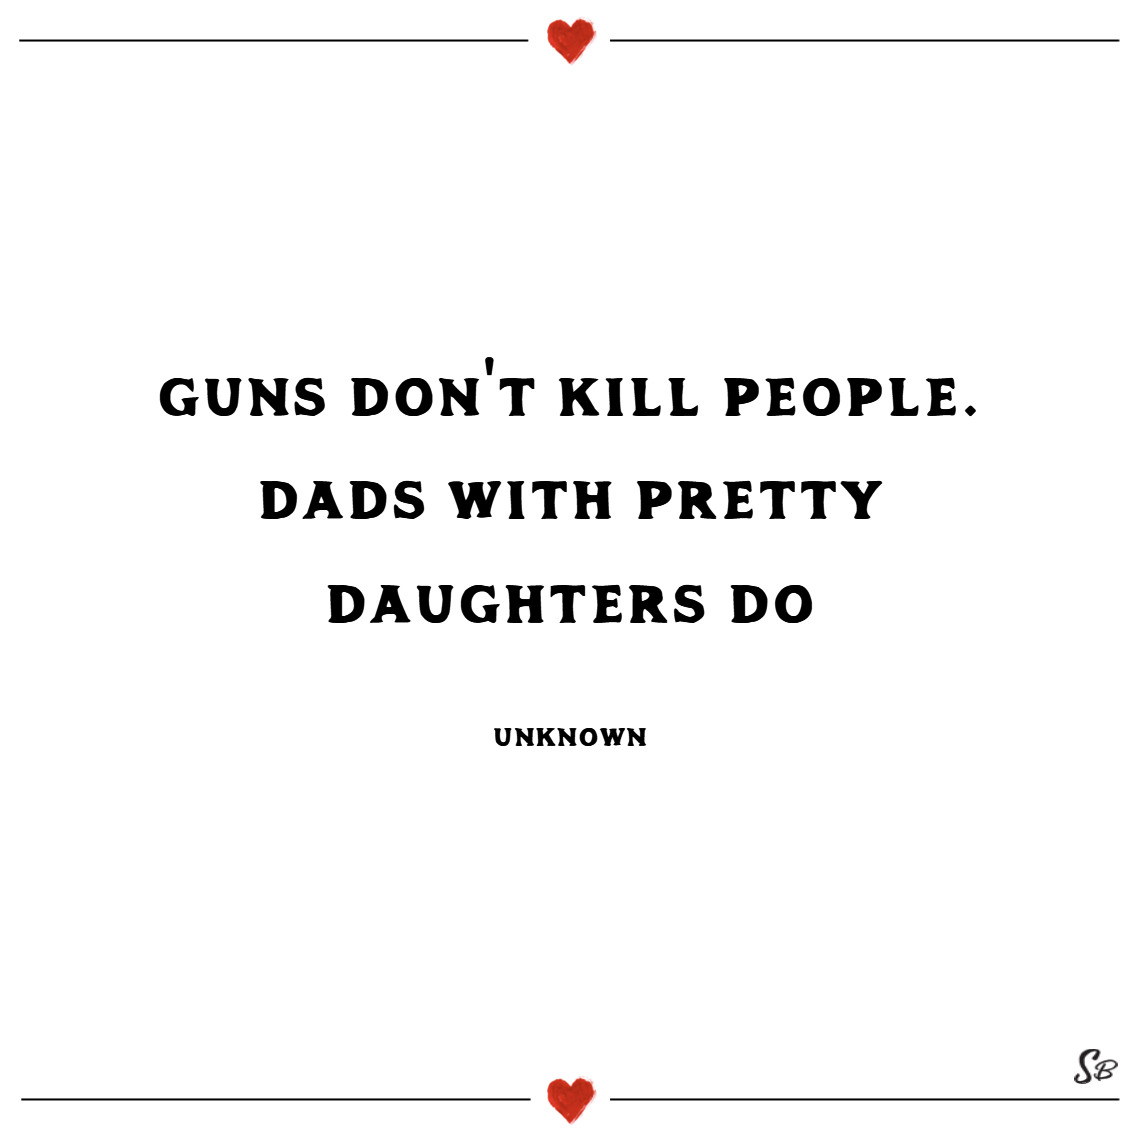 Guns don't kill people. dads with pretty daughters do. – unknown